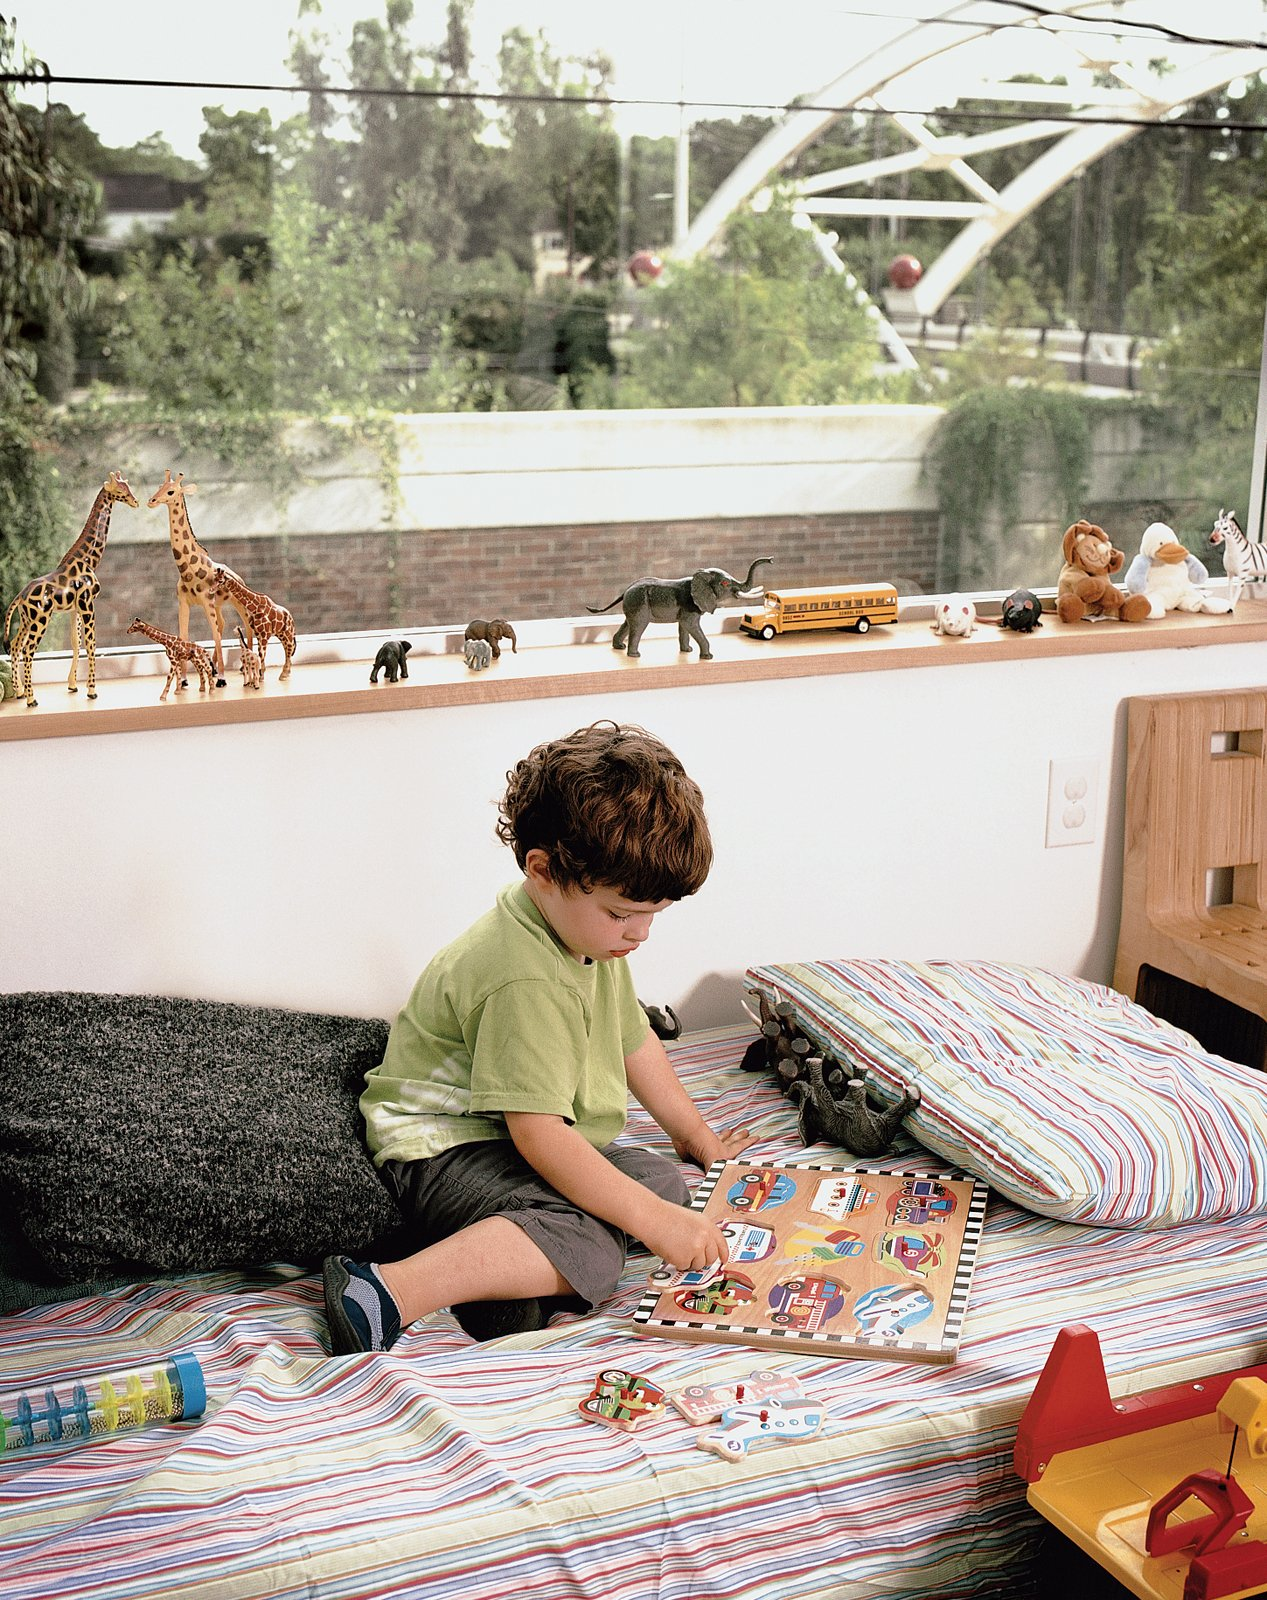 Kids Room and Bedroom Room Type Leroy with his menagerie and the highway-spanning bridge beyond.  Photo 6 of 12 in Houston, TX